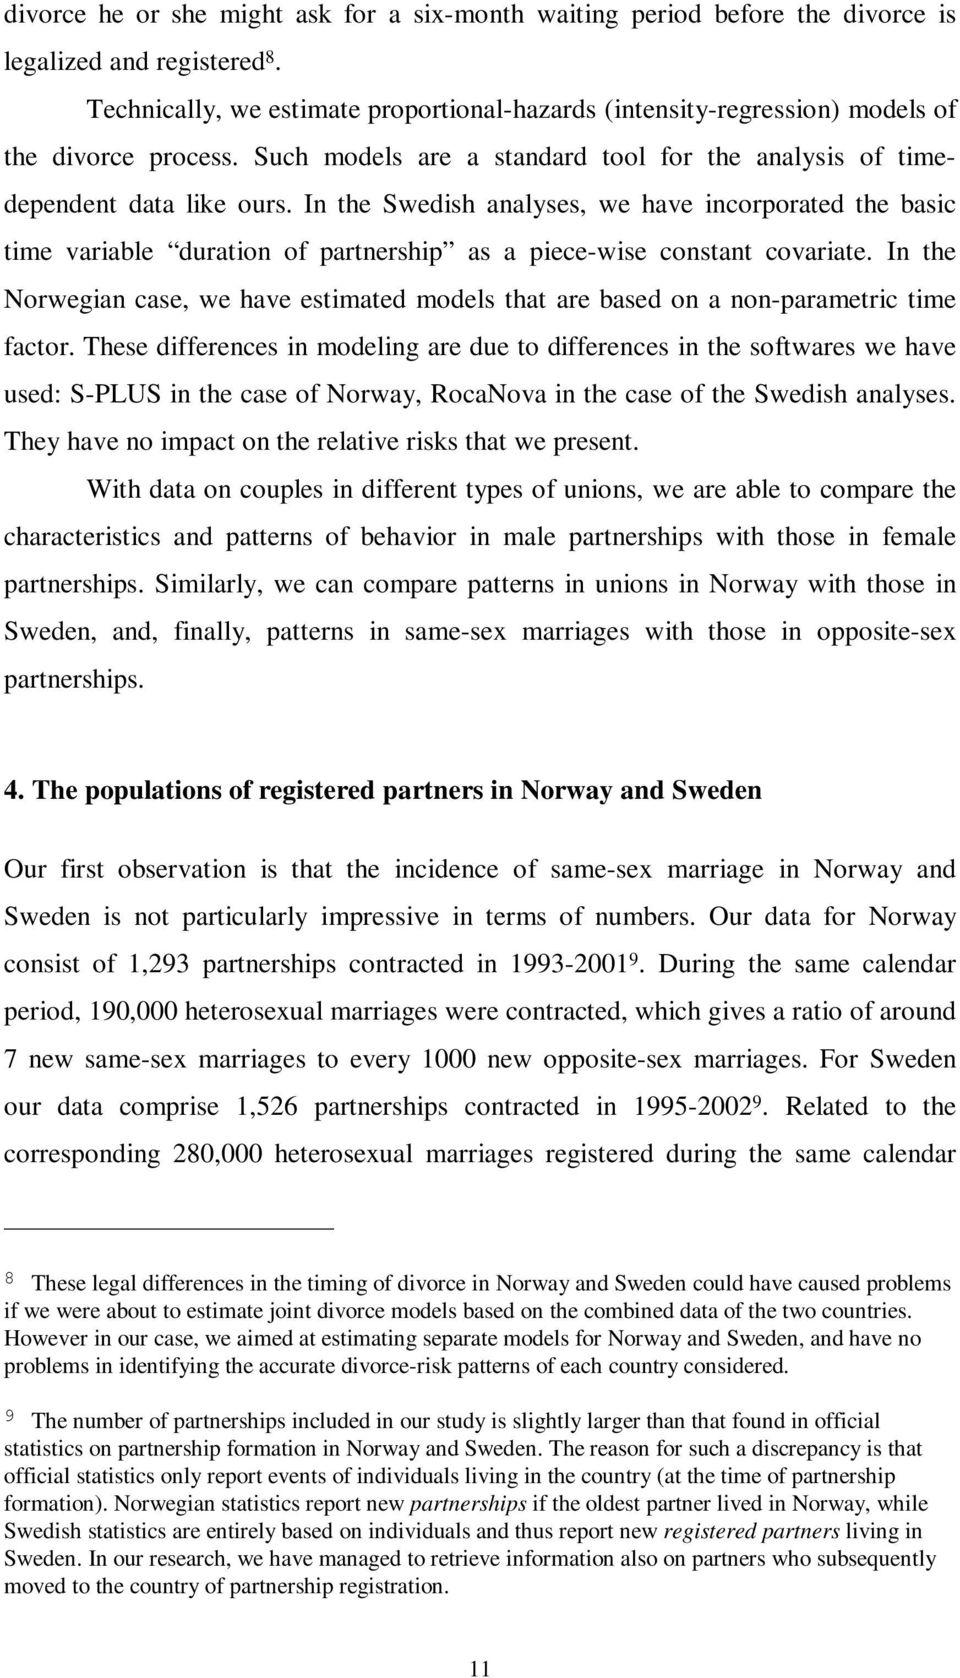 In the Swedish analyses, we have incorporated the basic time variable duration of partnership as a piece-wise constant covariate.